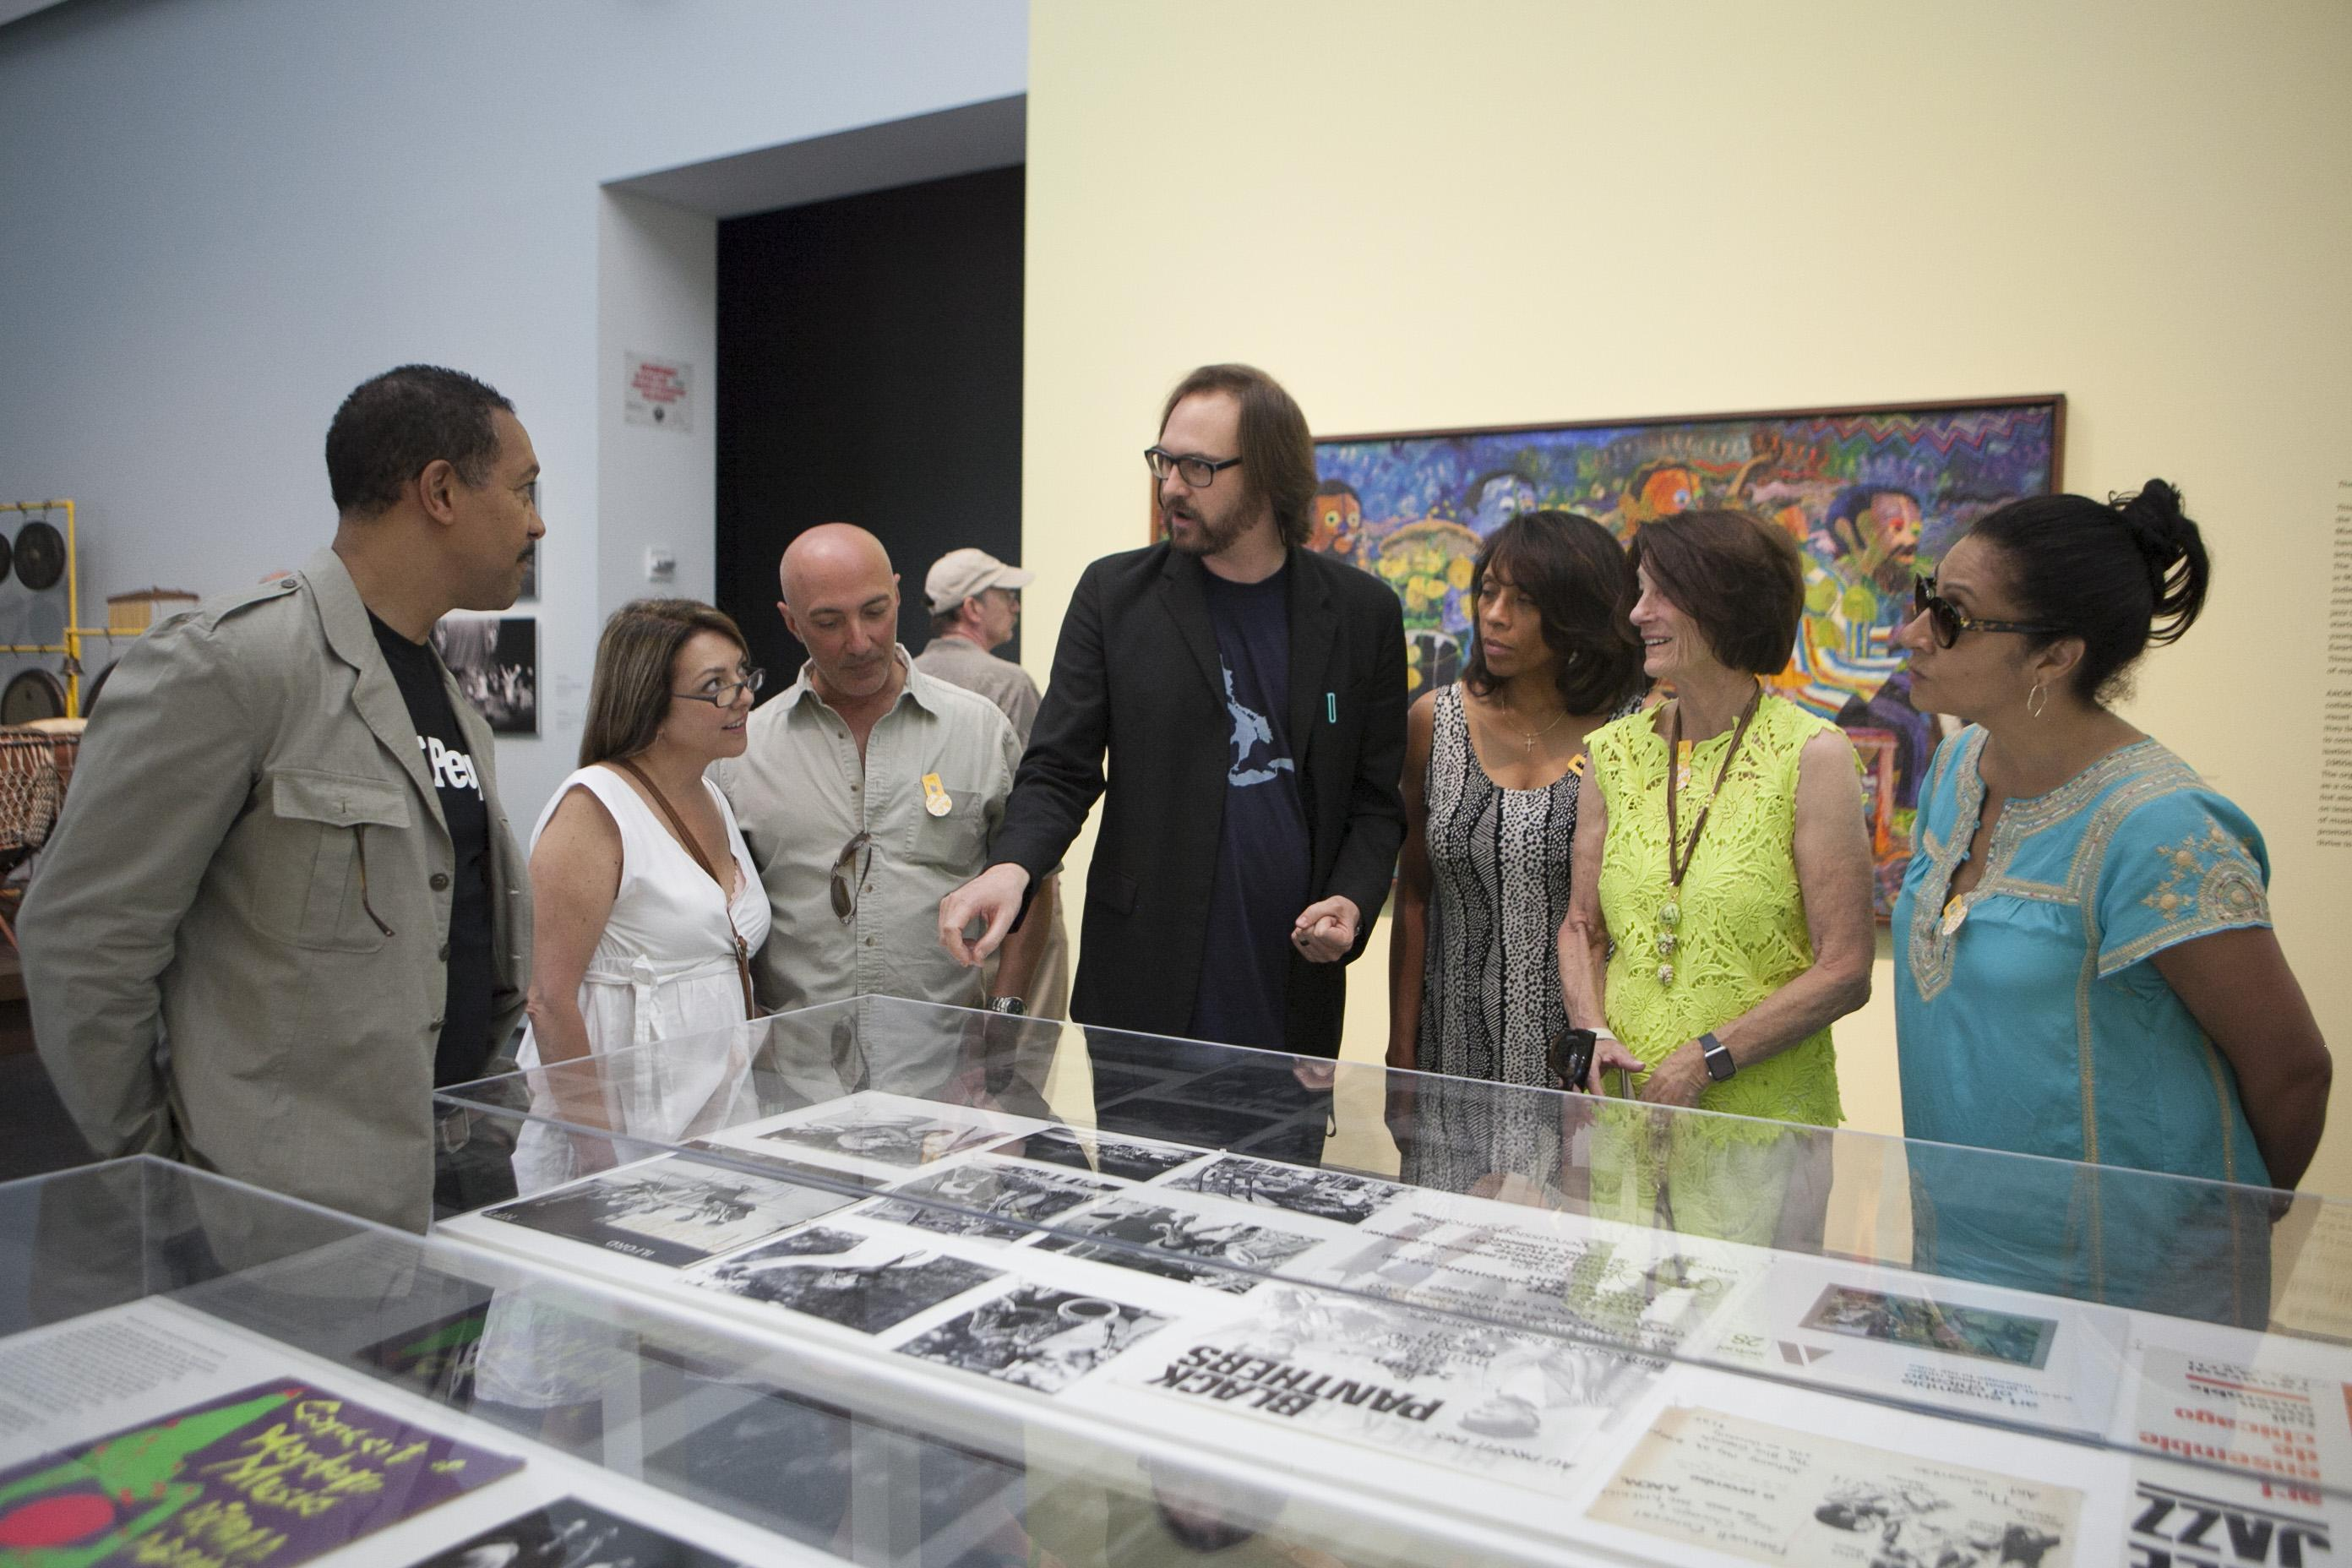 The exhibition curator speaks with a small group inside *The Freedom Principle* exhibition.